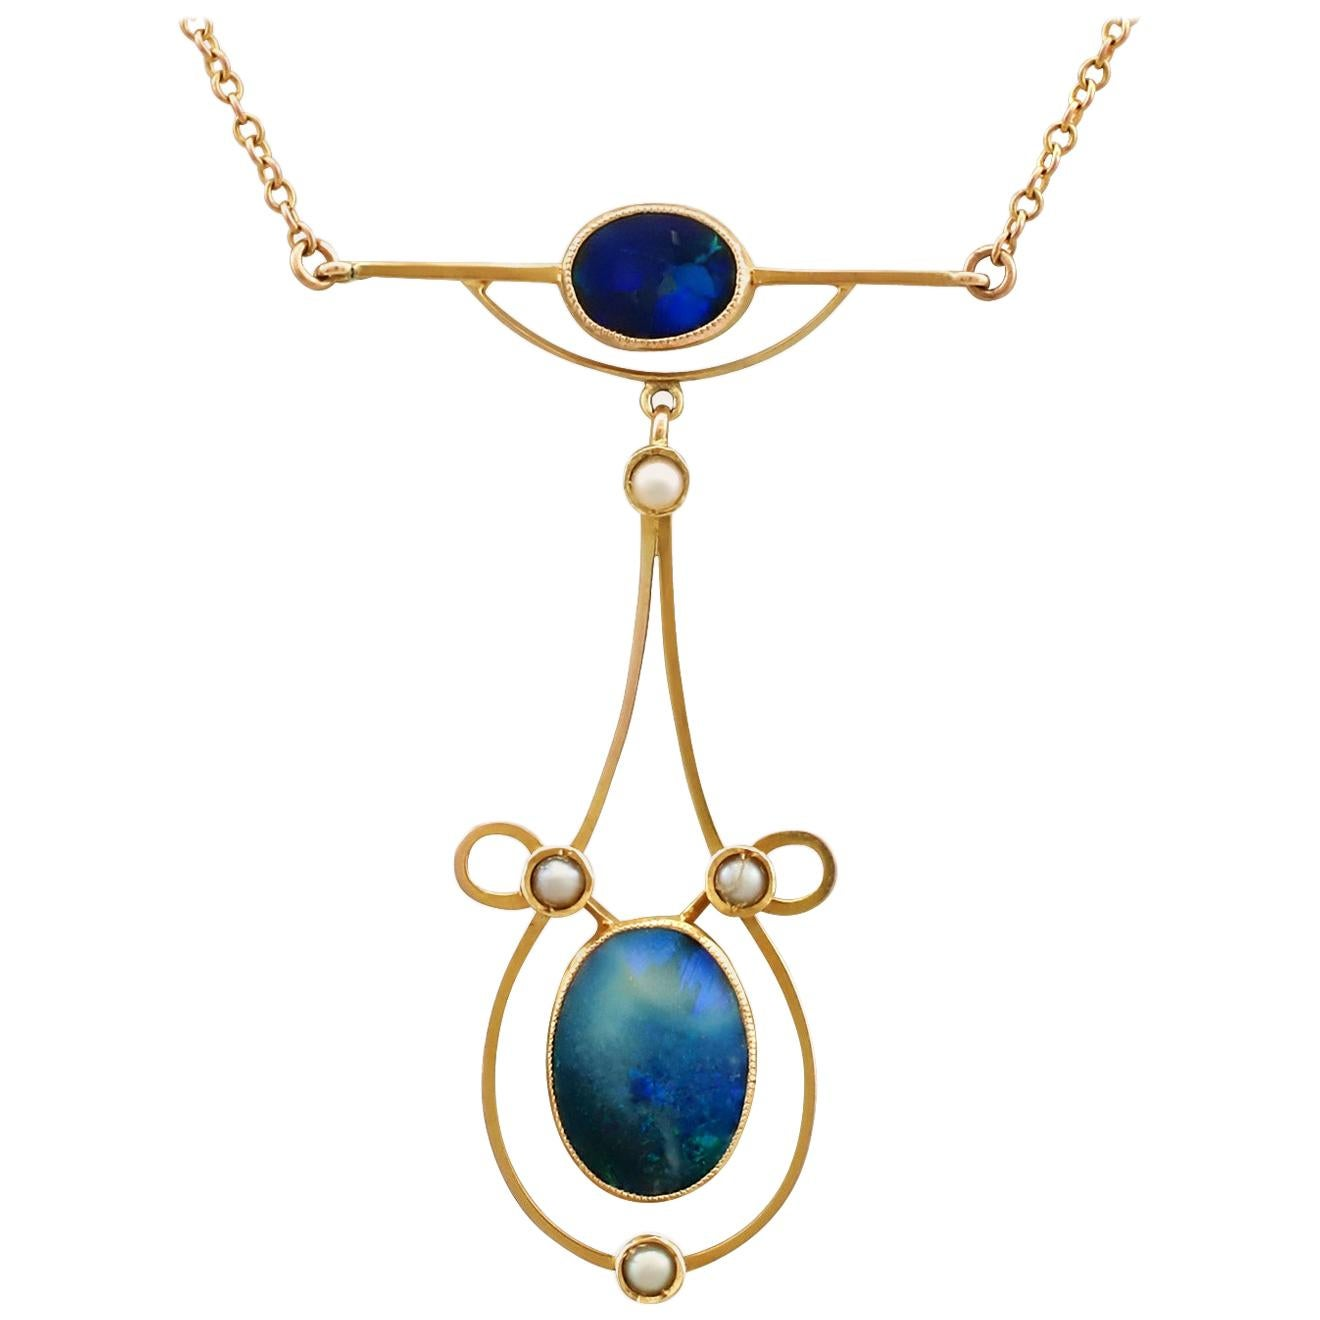 e37b163d46a6fa Victorian Necklaces - 1,203 For Sale at 1stdibs